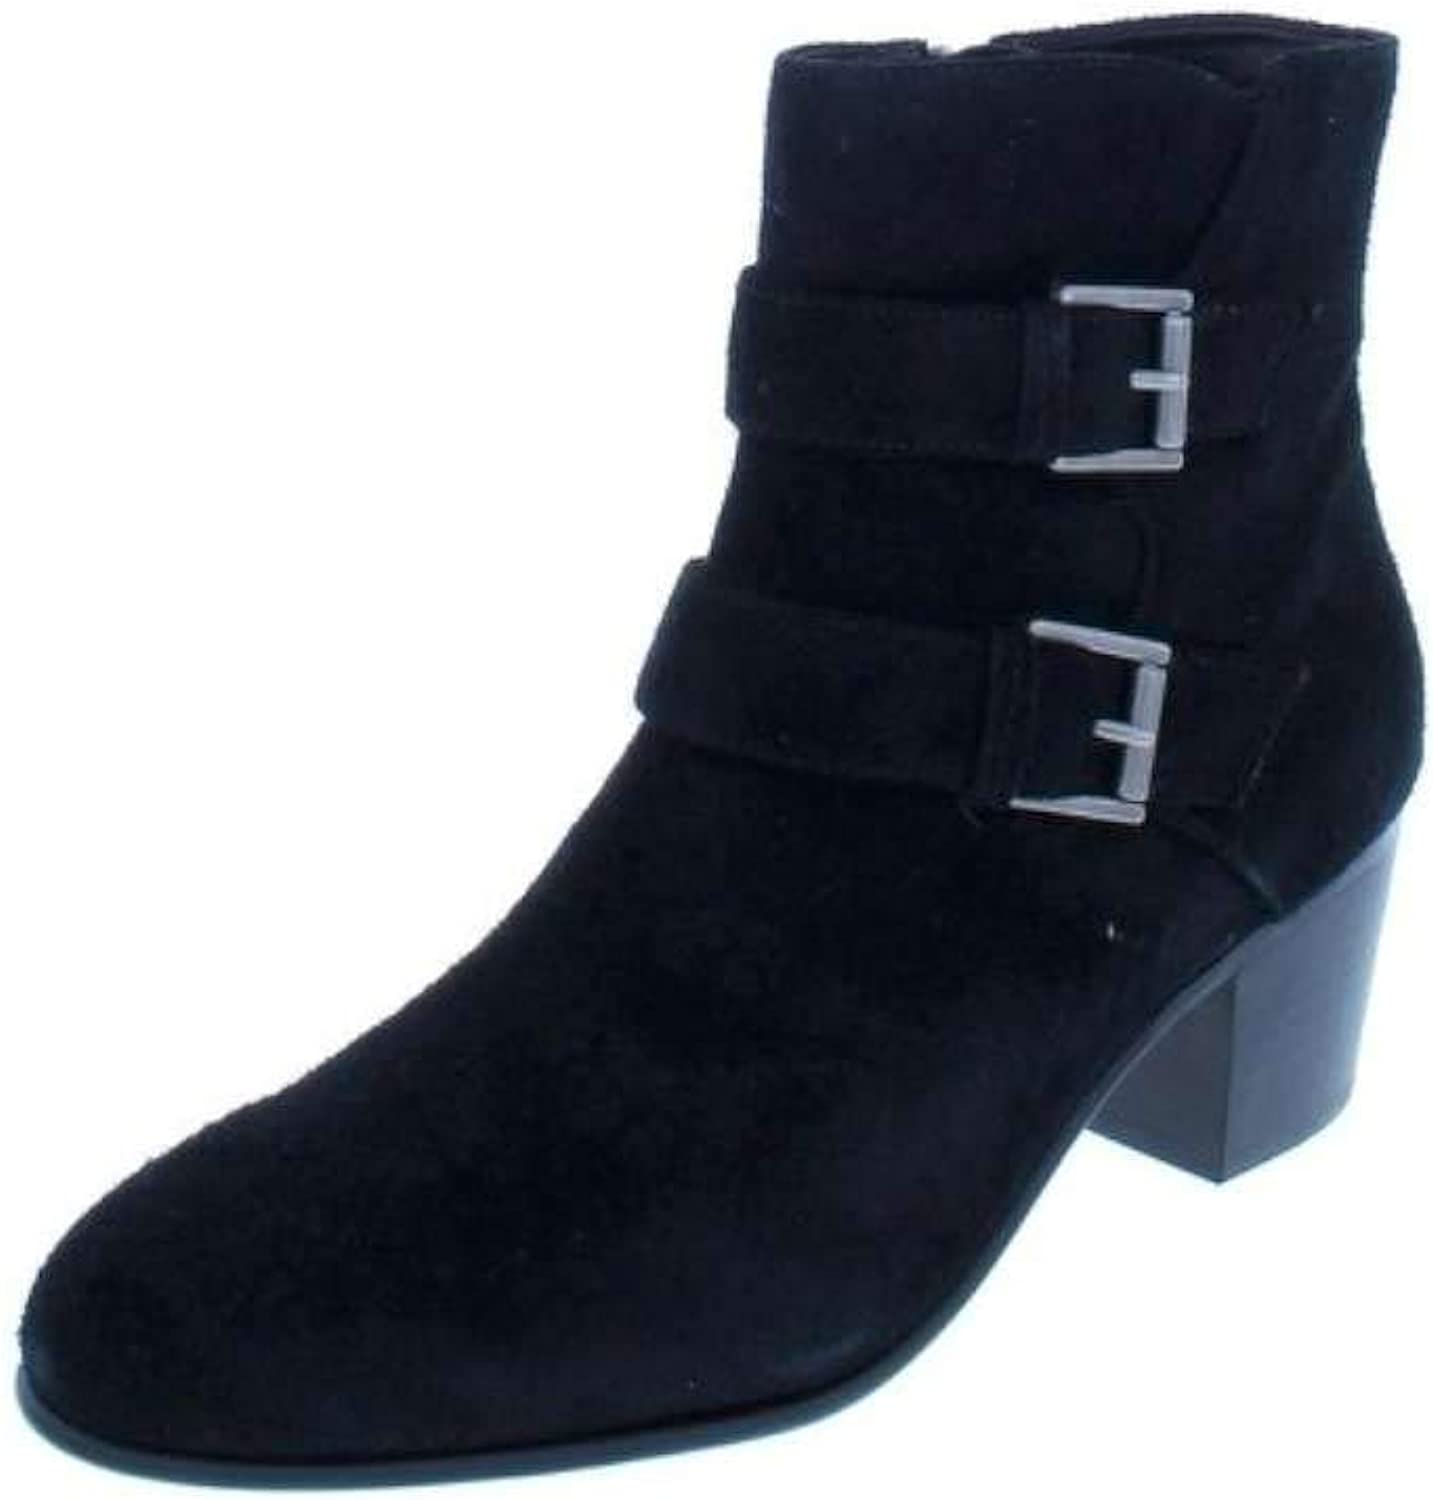 Clarks Womens Ceara Chloe Buckle Booties Ankle Boots